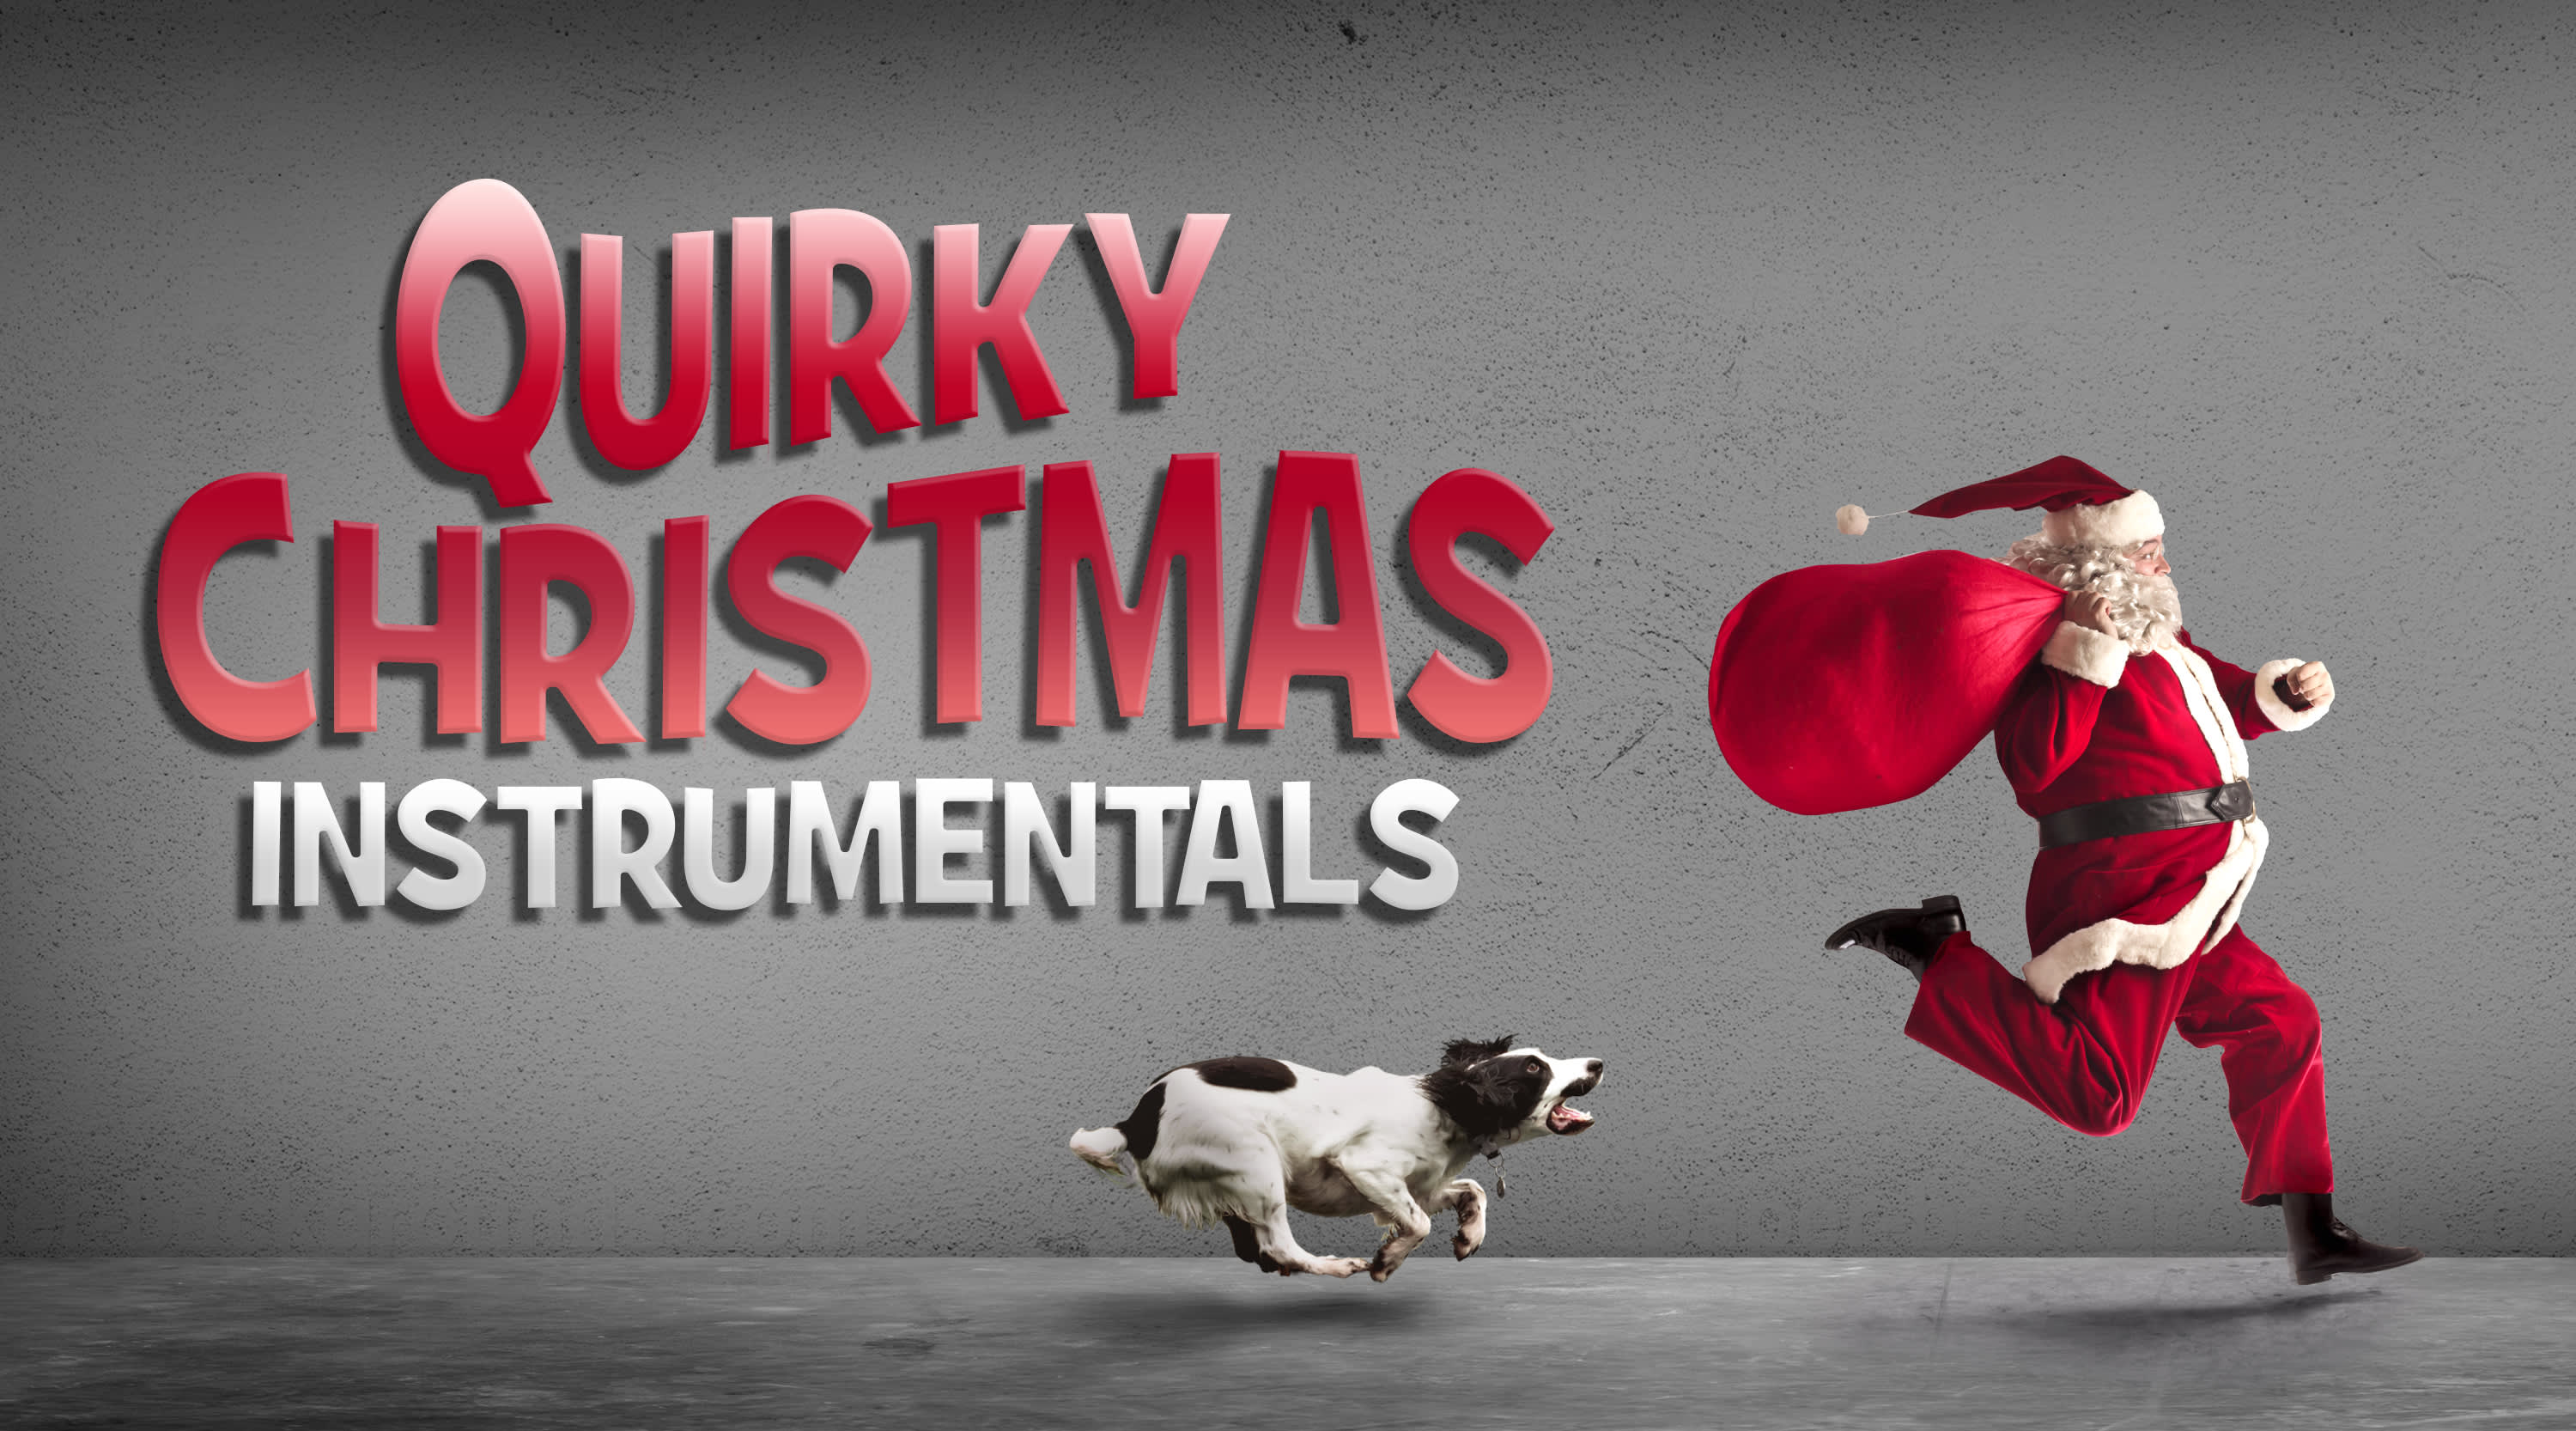 Quirky Christmas Instrumentals